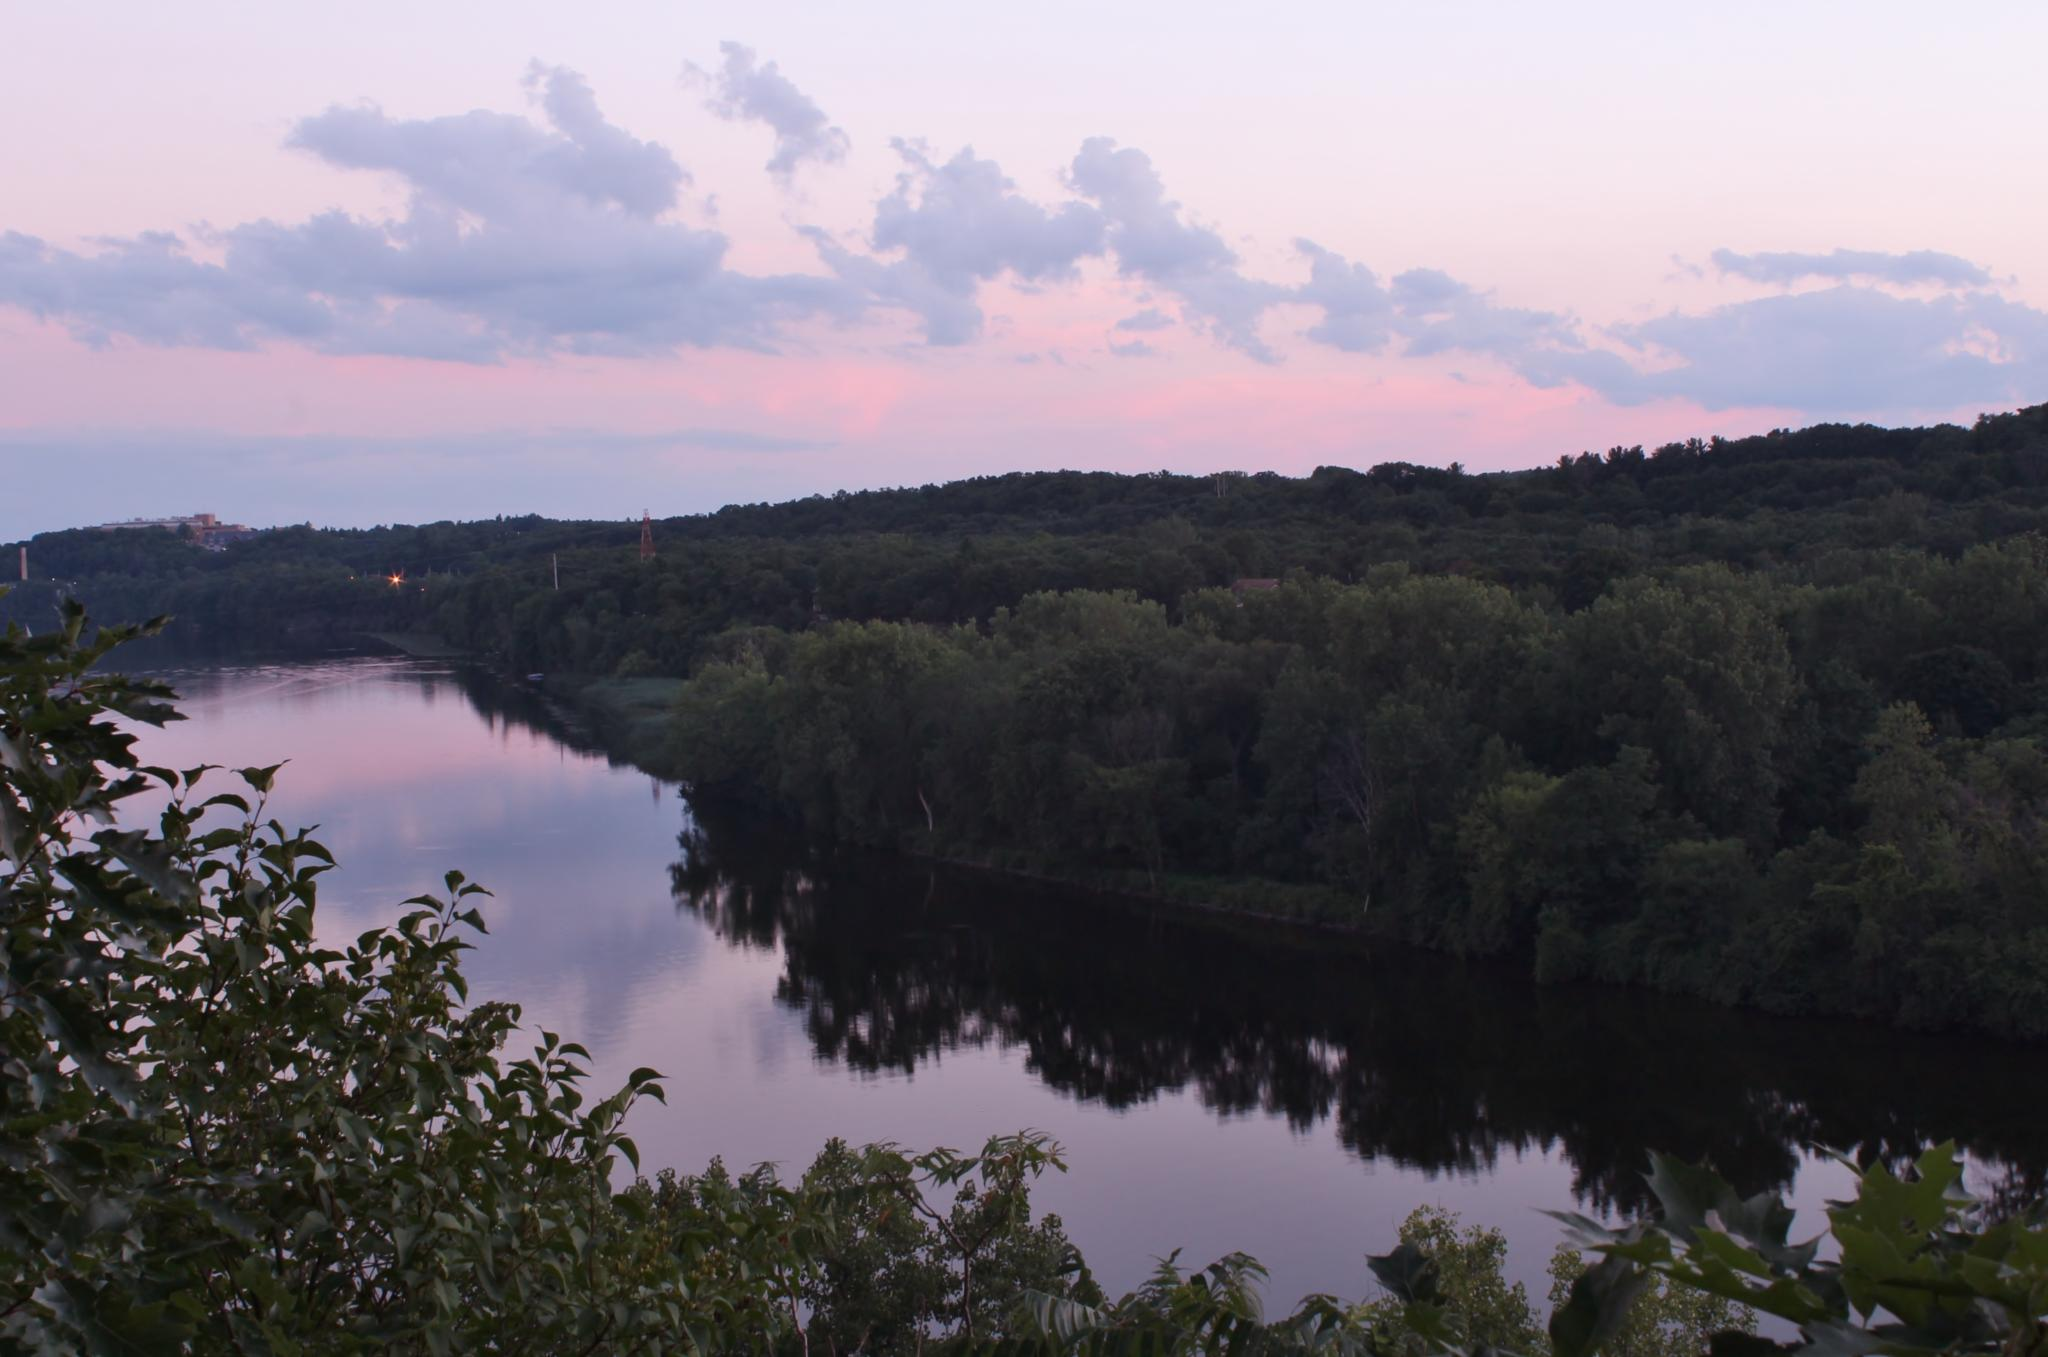 More sunset at the Mohawk River by debbie.lamontesnyder